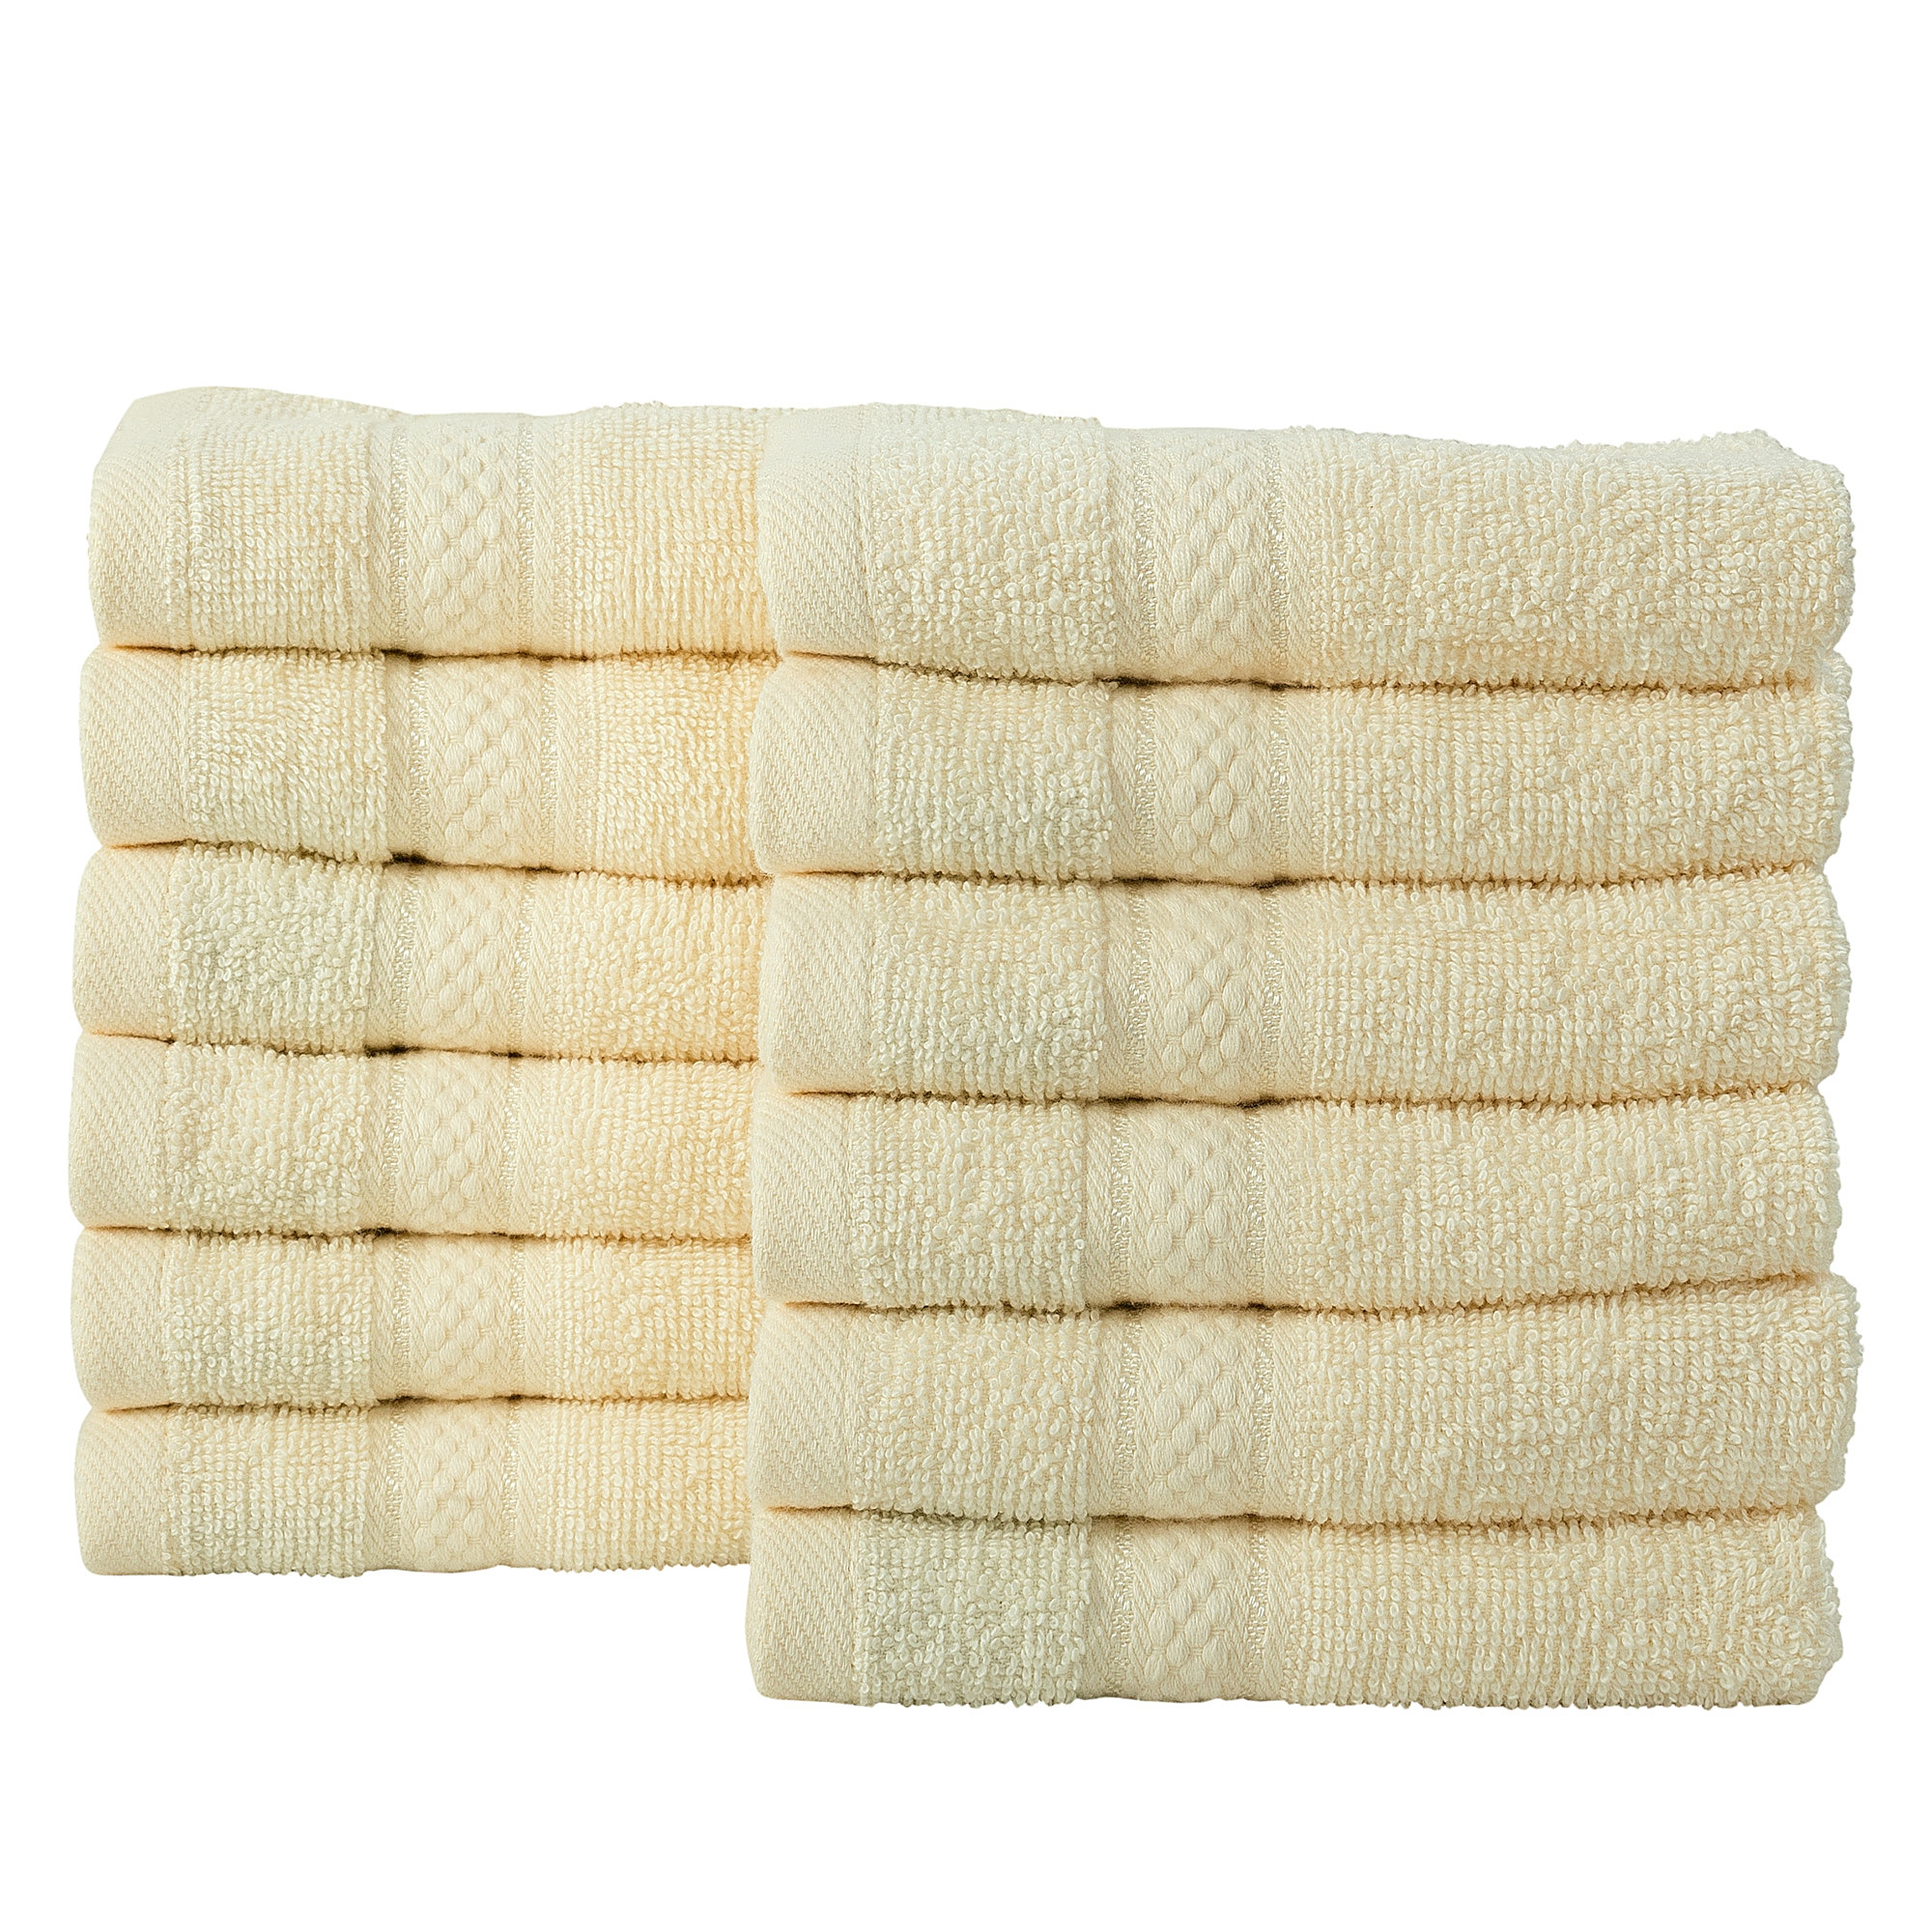 12 Pcs Face Cotton Towel Bale Set Cream Plain